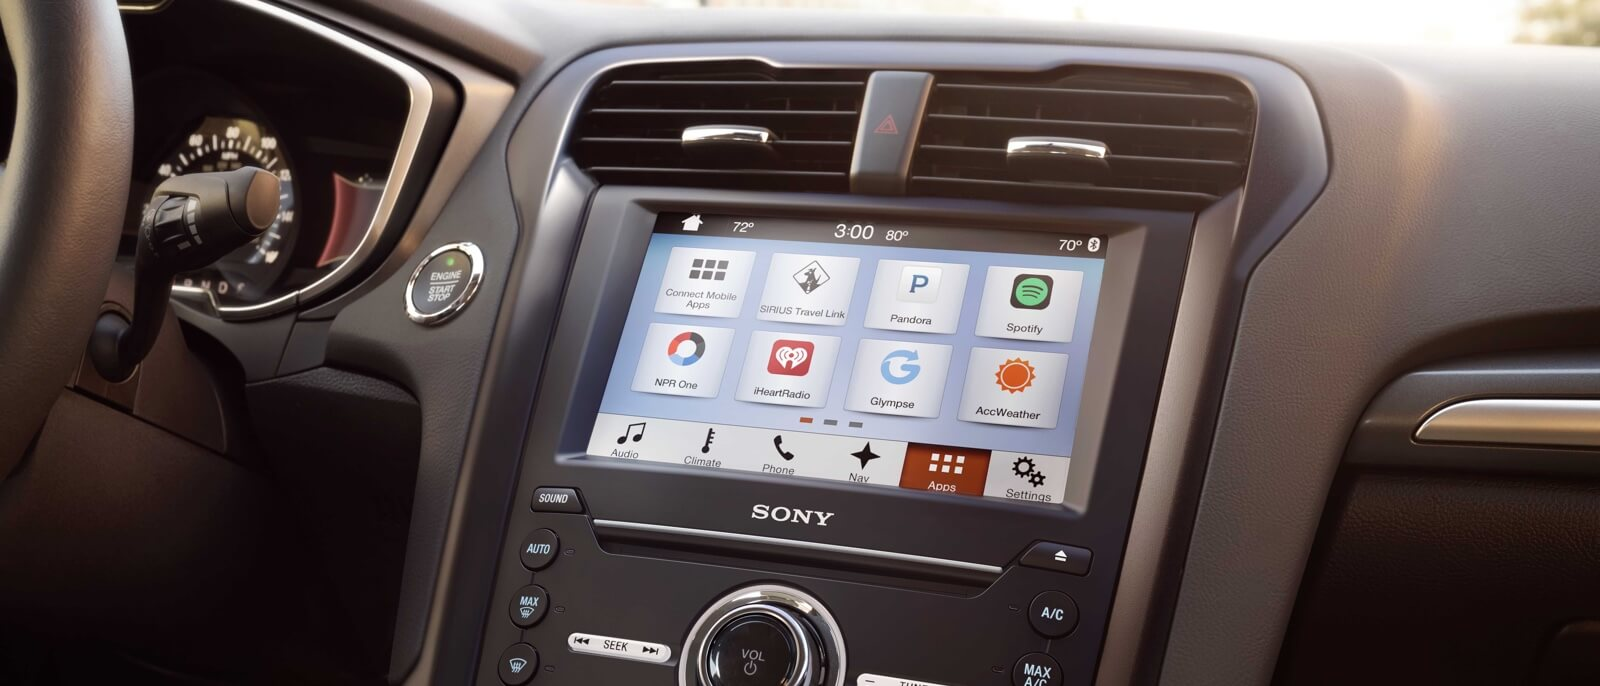 2017 Ford Fusion interior features